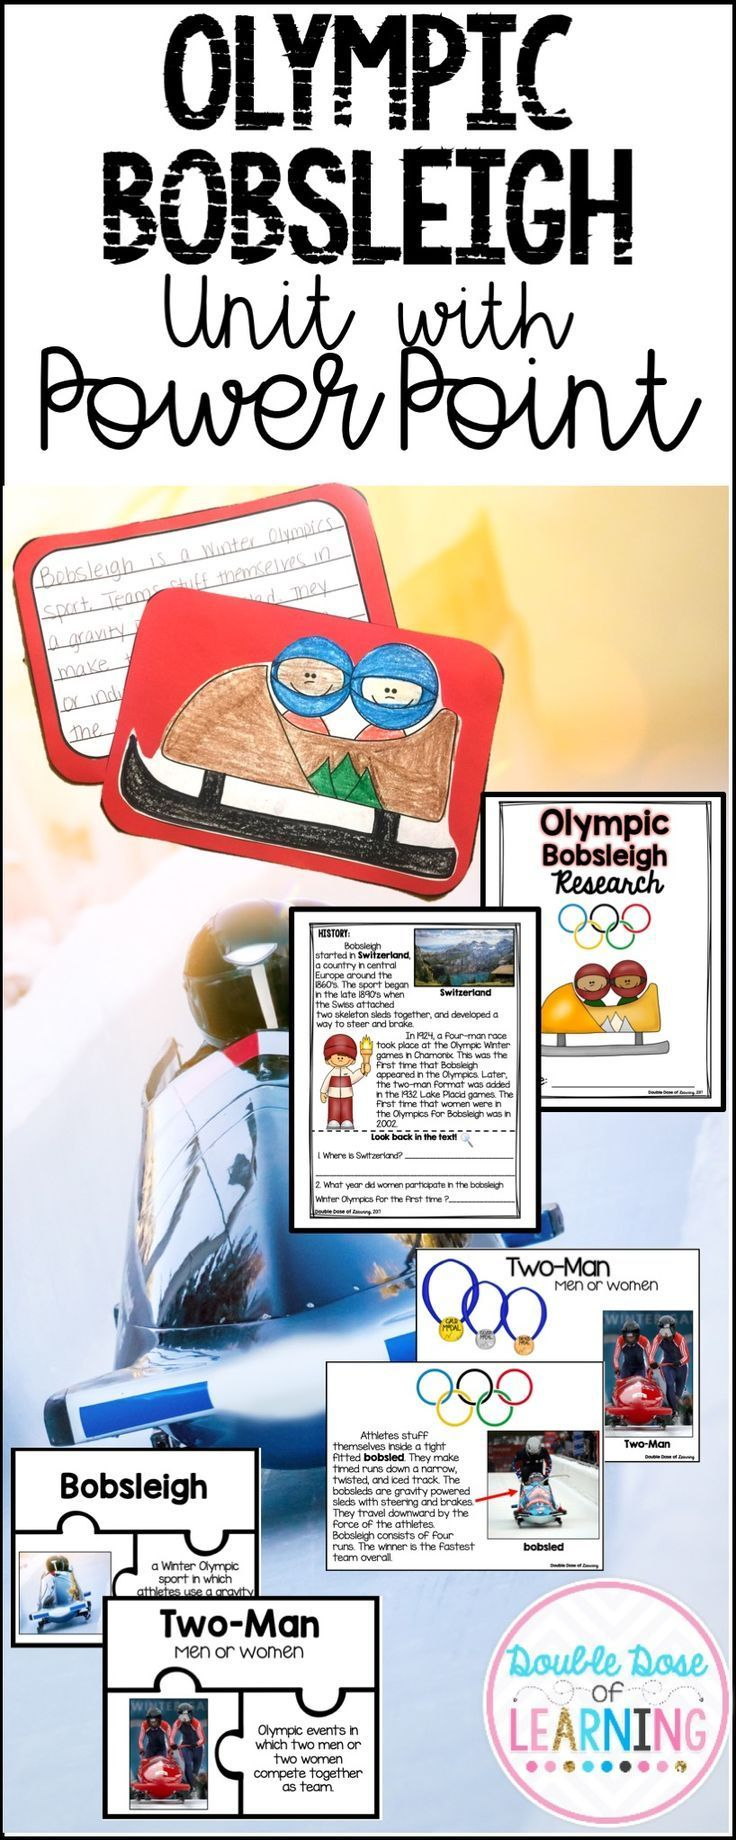 A week long unit on the Olympic Bobsleigh Winter event! Perfect for the upcoming 2018 Winter Olympics! Grades 1-3. PowerPoint included, comprehension workbook, vocabulary work, craftivity, early finisher work and so much more!